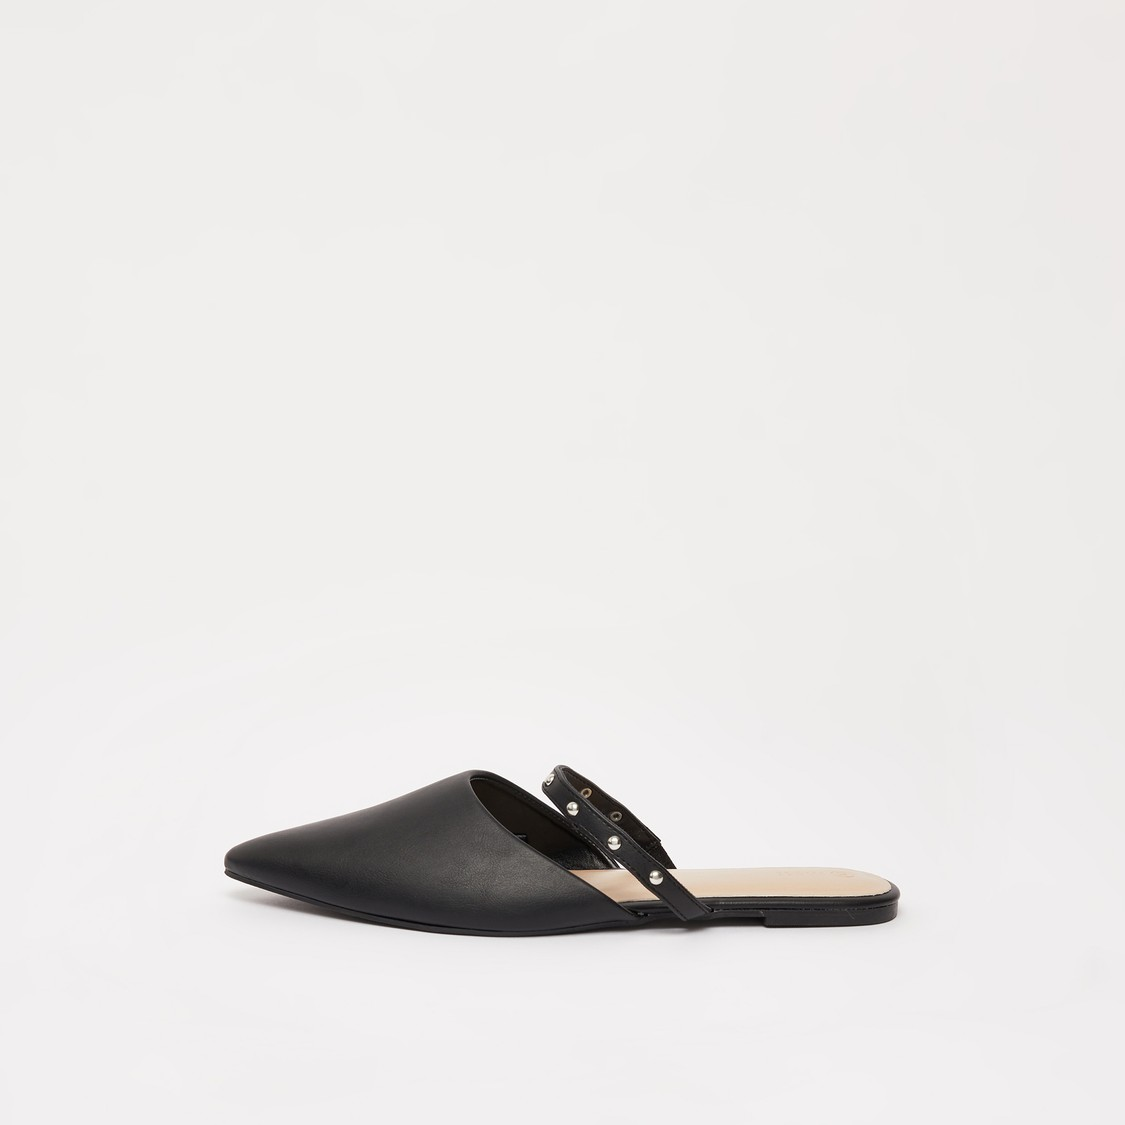 Embellished Slip-On Shoes with Pointed Toe Detail